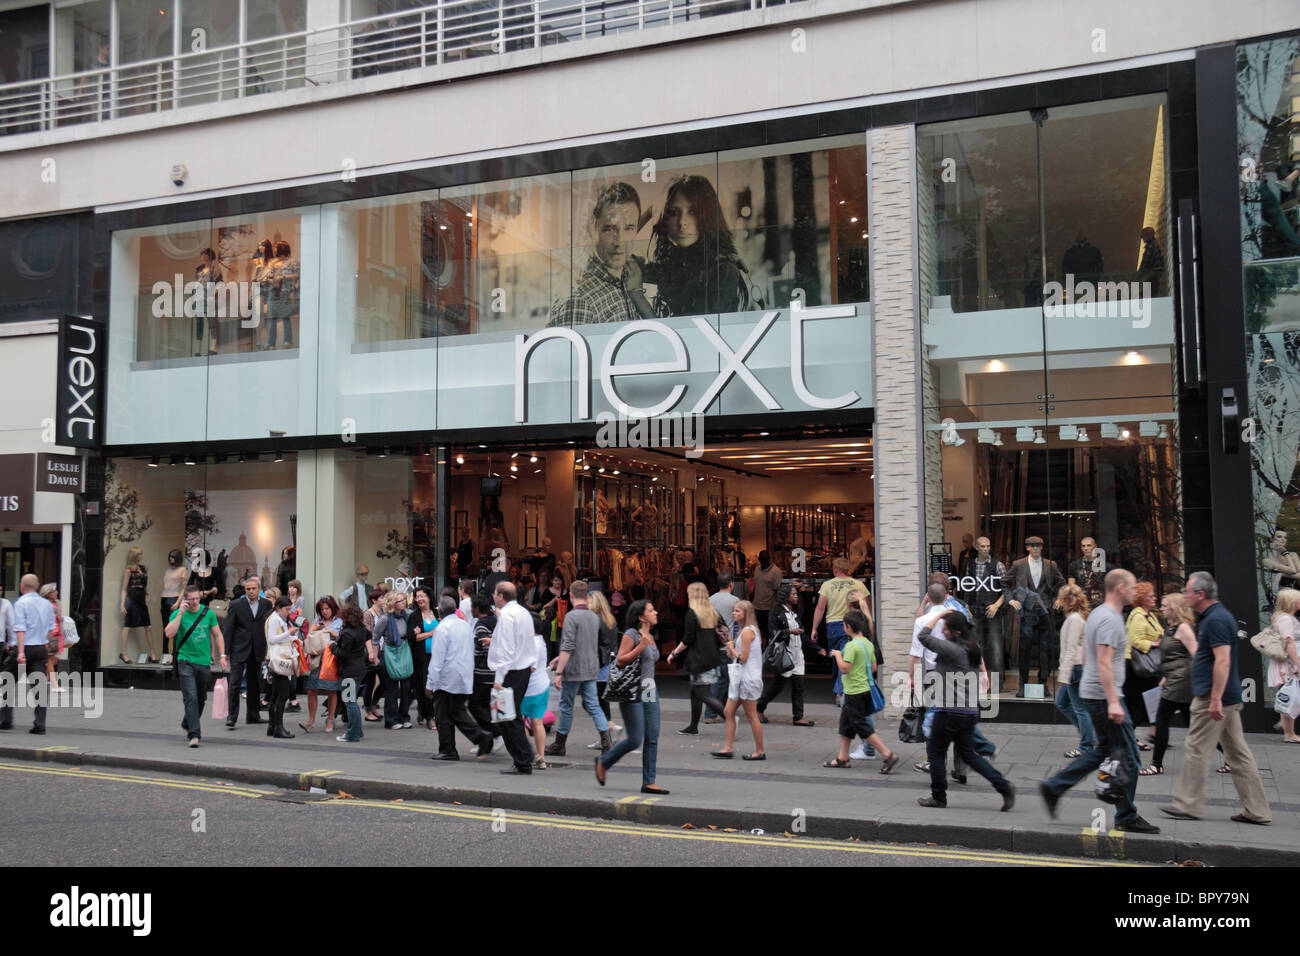 Street View Of The Next Clothing And Fashion Store On